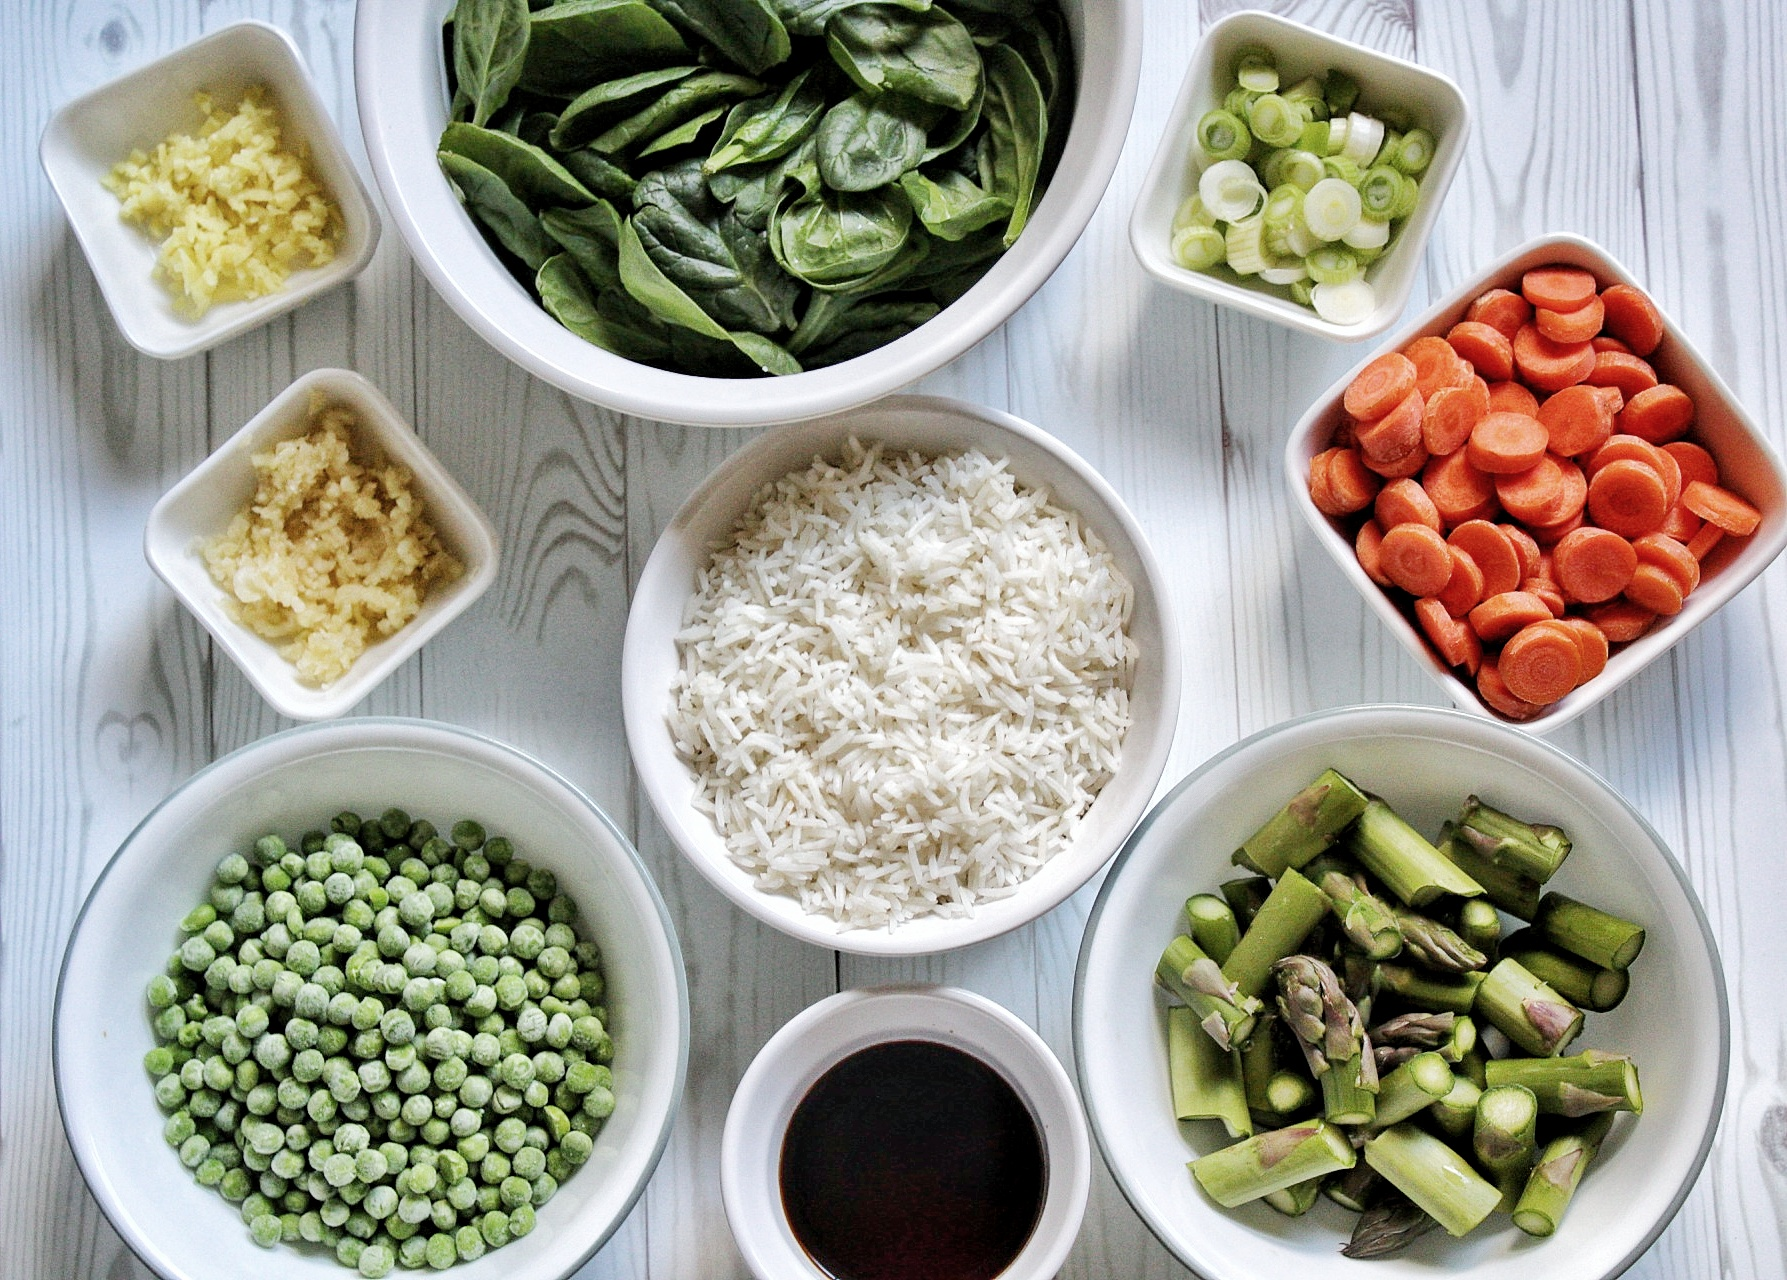 Spinach, green onions, carrots, asparagus, soy sauce, rice, green peas, garlic, and ginger in small bowls